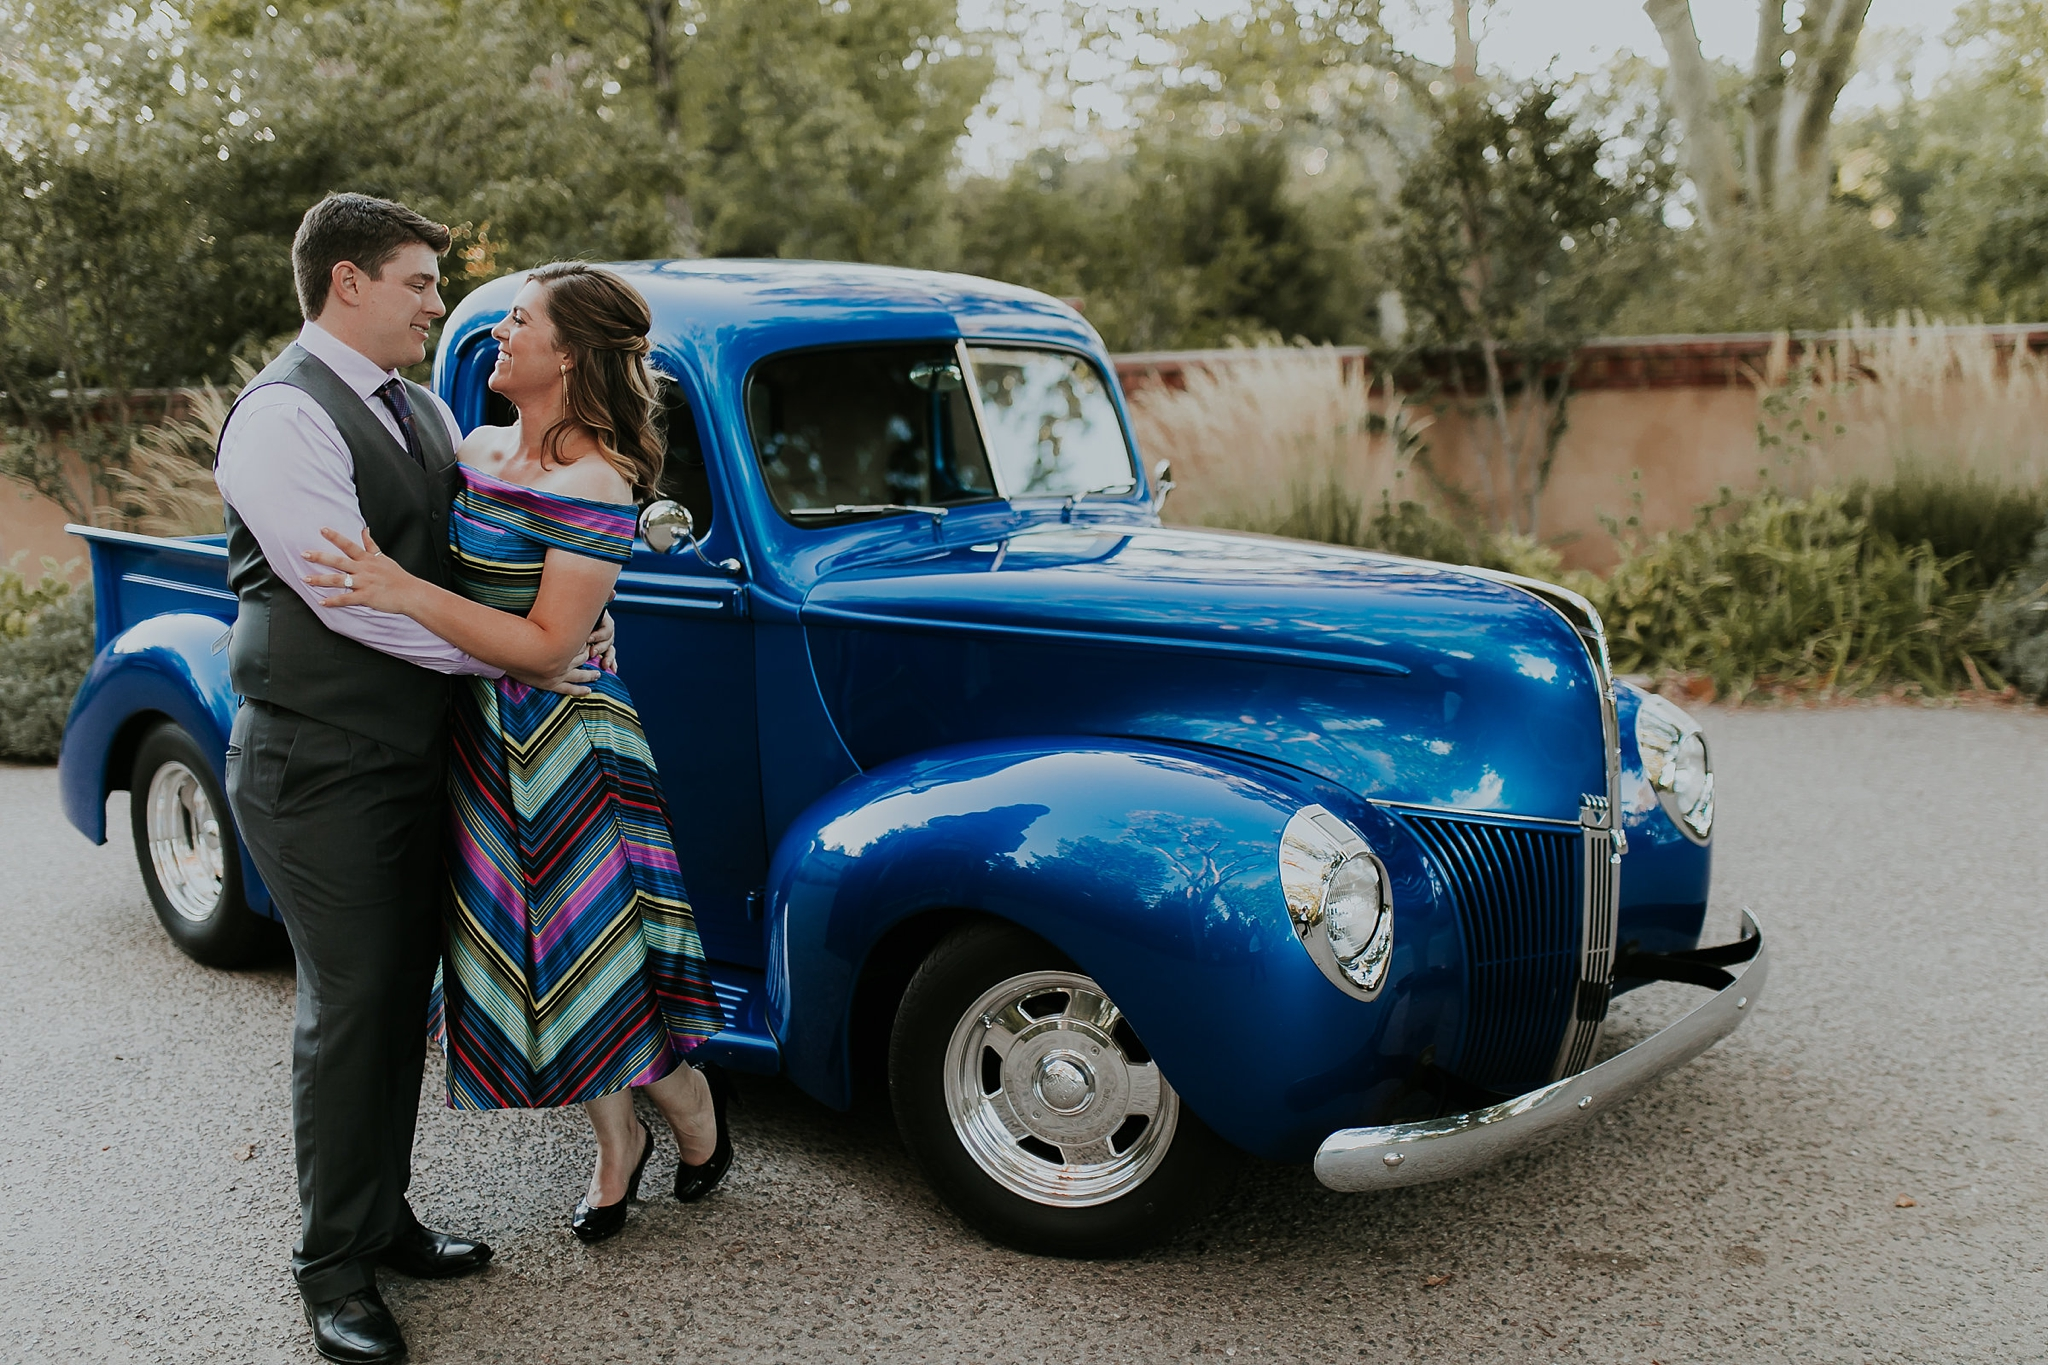 Alicia+lucia+photography+-+albuquerque+wedding+photographer+-+santa+fe+wedding+photography+-+new+mexico+wedding+photographer+-+new+mexico+wedding+-+los+poblanos+engagement+-+los+poblanos+wedding+-+farm+wedding+-+lavender+farm+wedding_0018.jpg